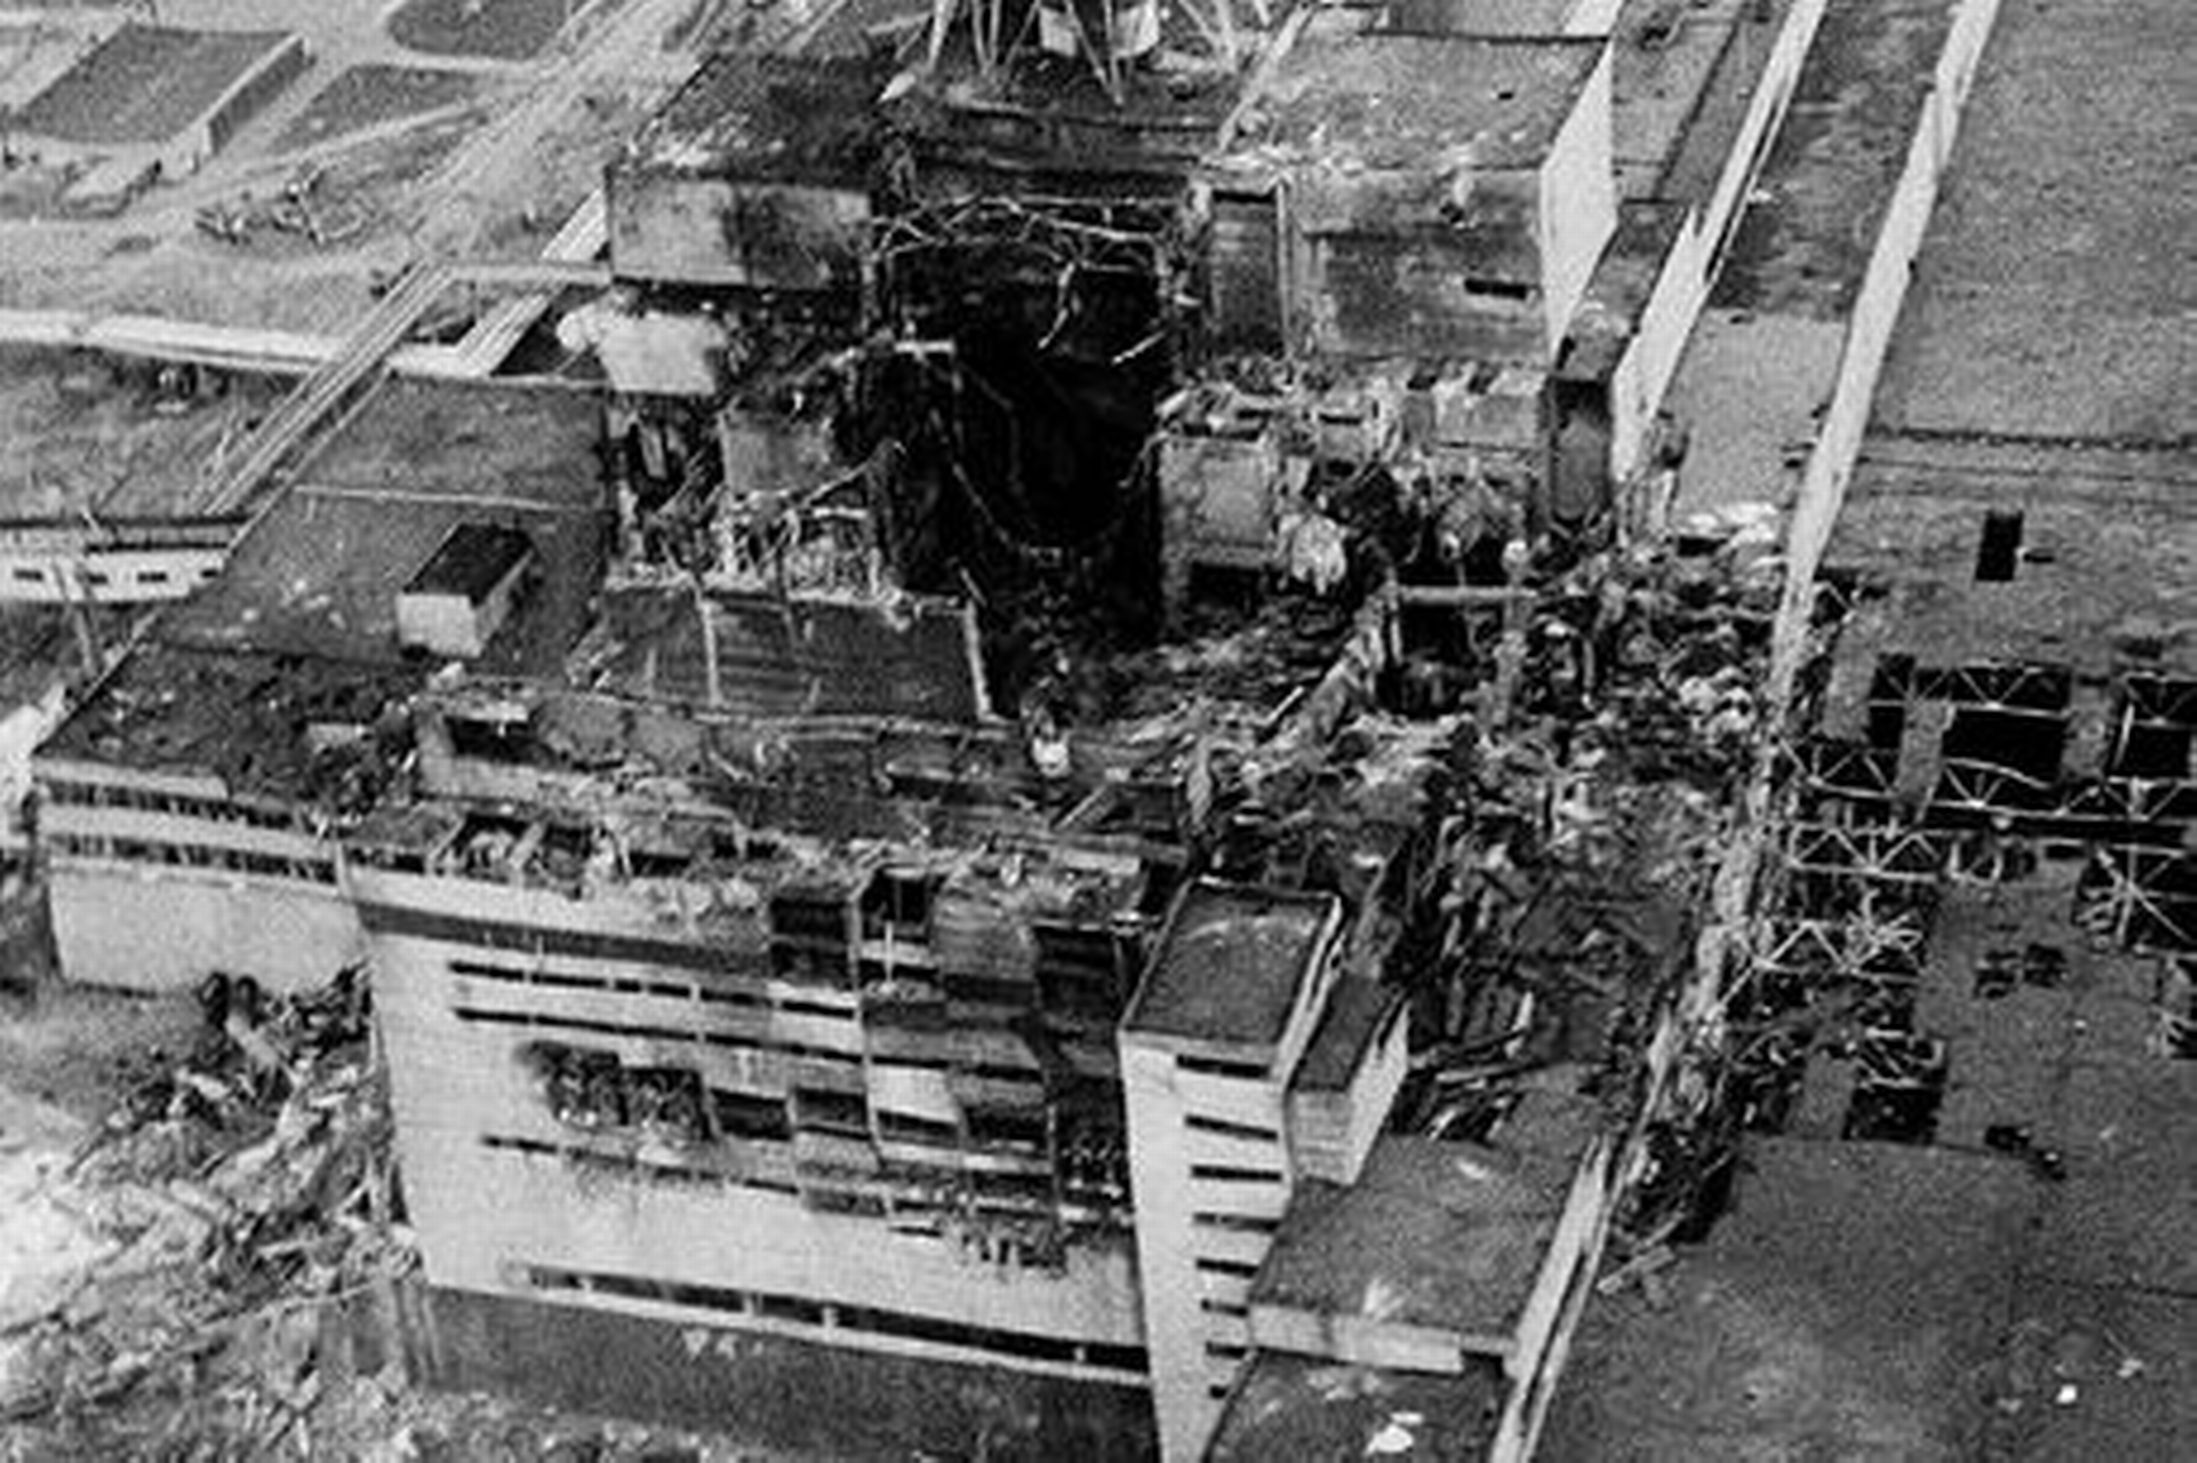 chernobyl-nuclear-disaster-384072564